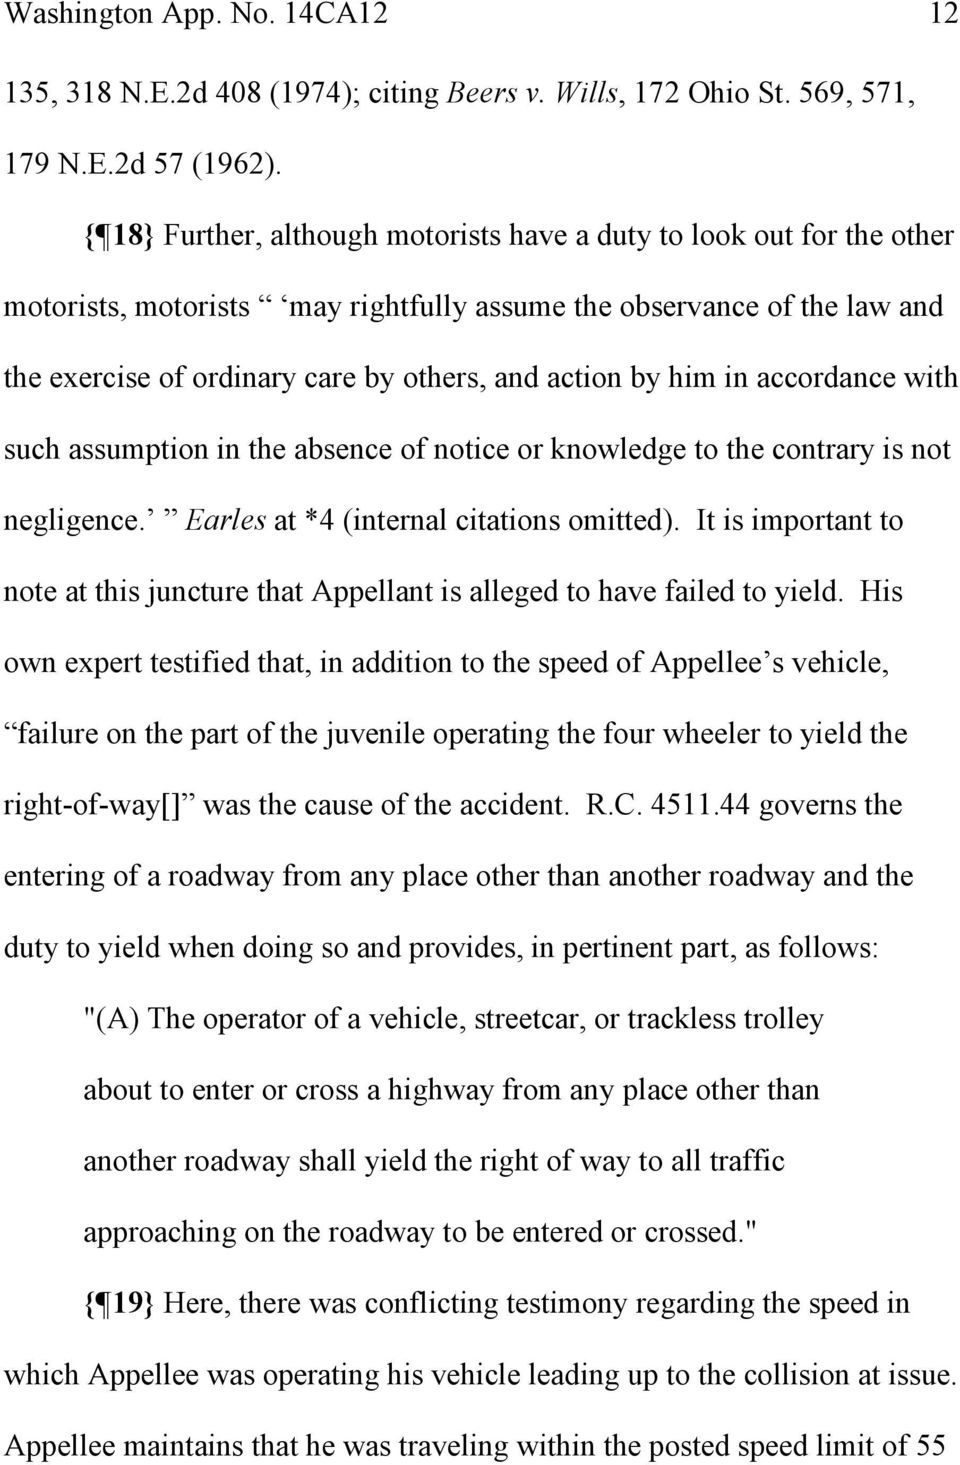 him in accordance with such assumption in the absence of notice or knowledge to the contrary is not negligence. Earles at *4 (internal citations omitted).